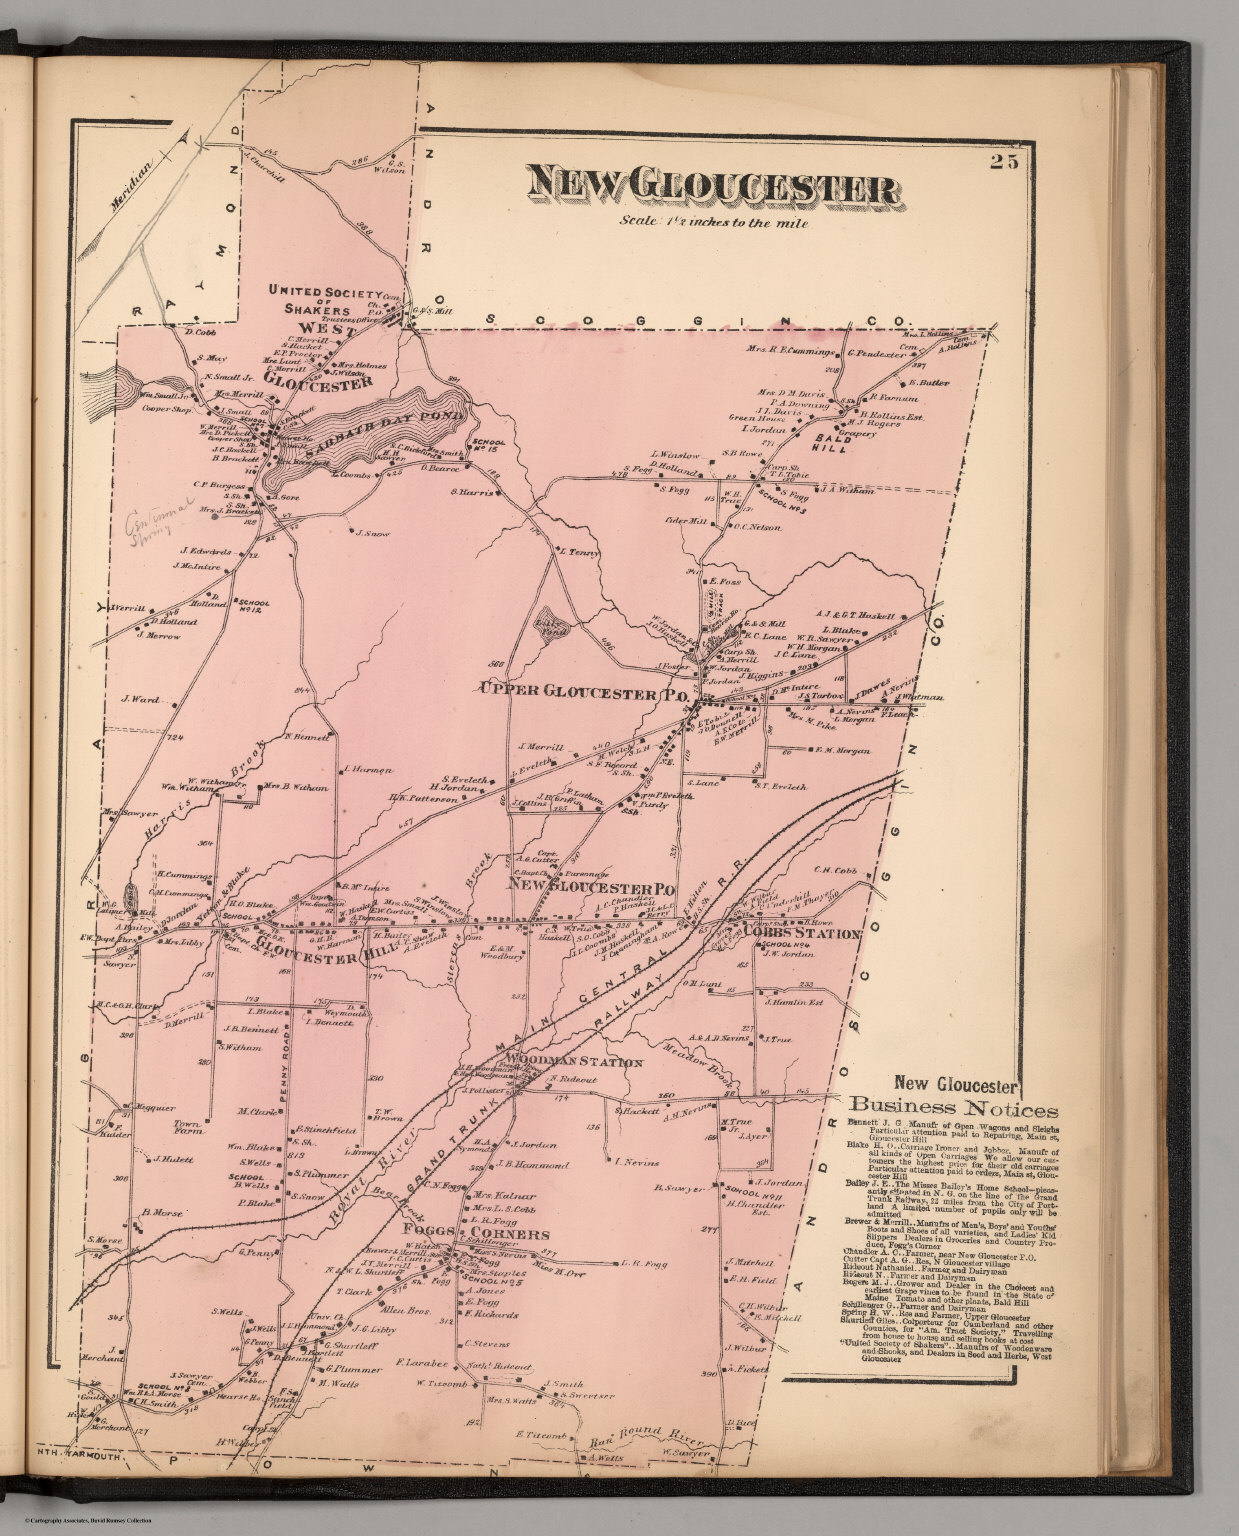 New Gloucester Cumberland County Maine David Rumsey Historical